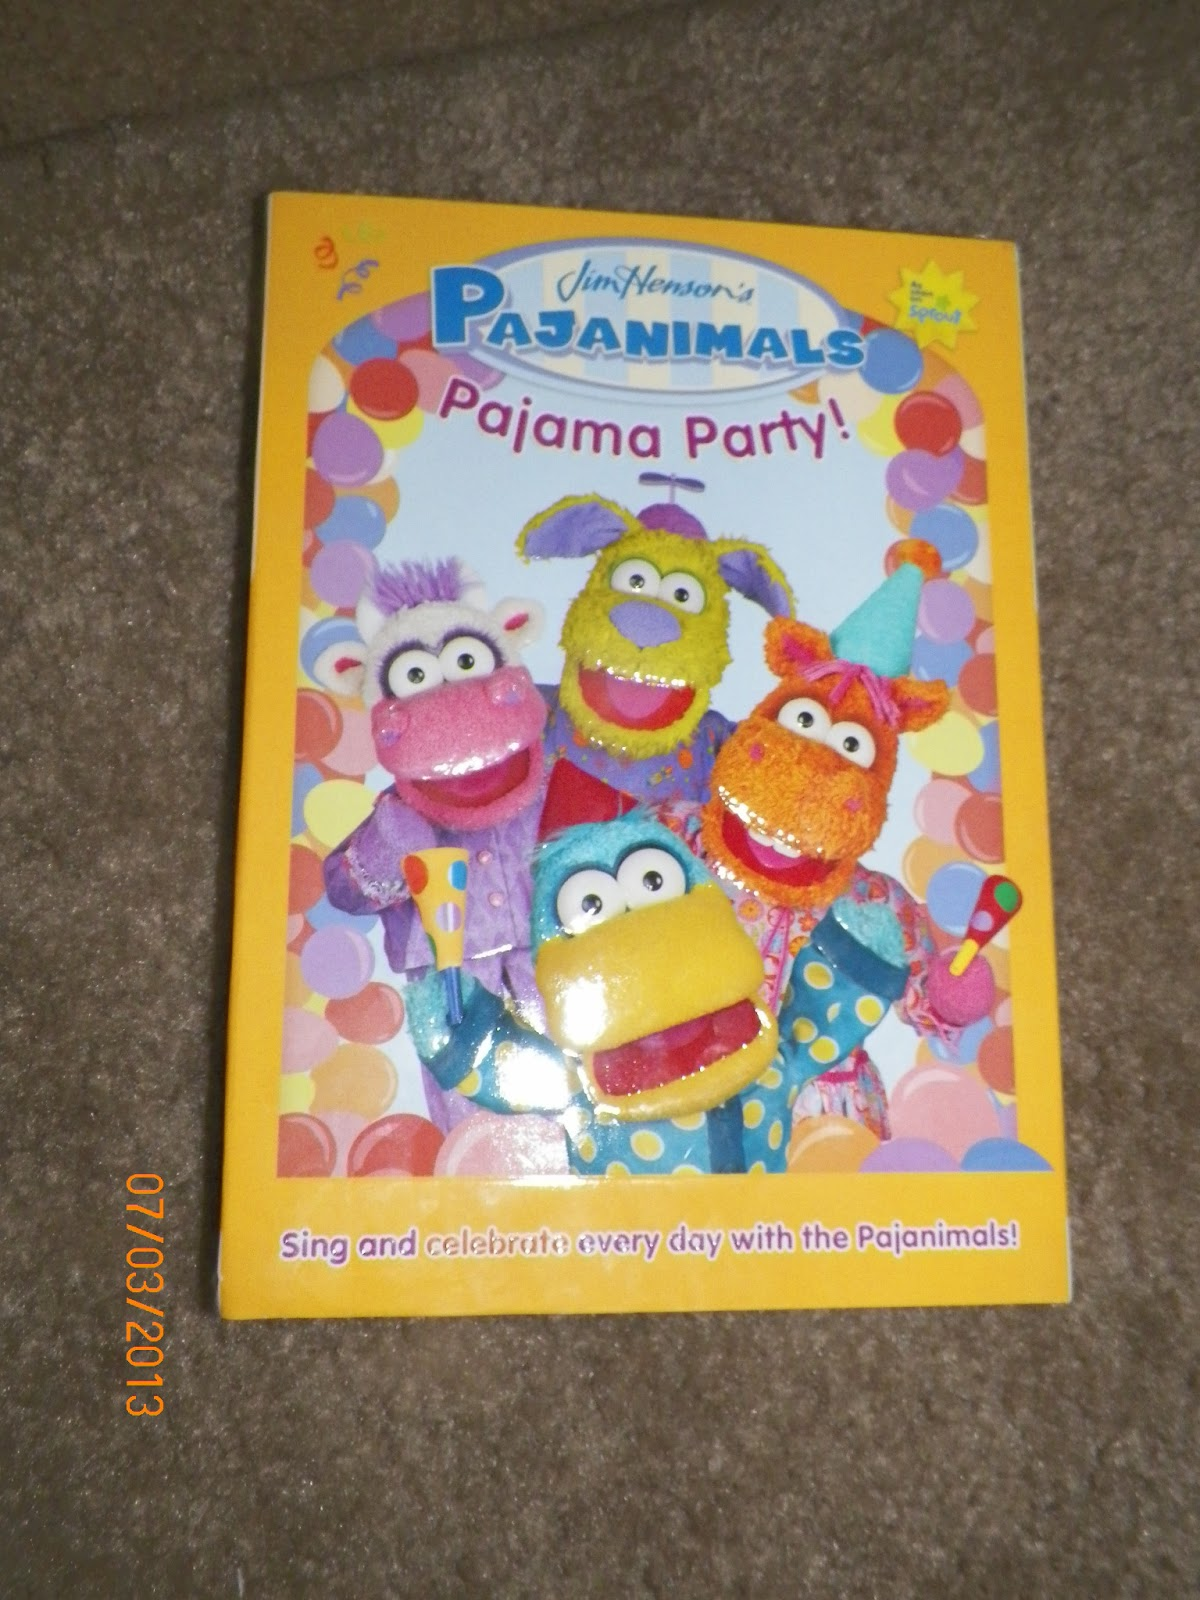 b9f262849e mygreatfinds  Pajanimals  Pajama Party! DVD Review